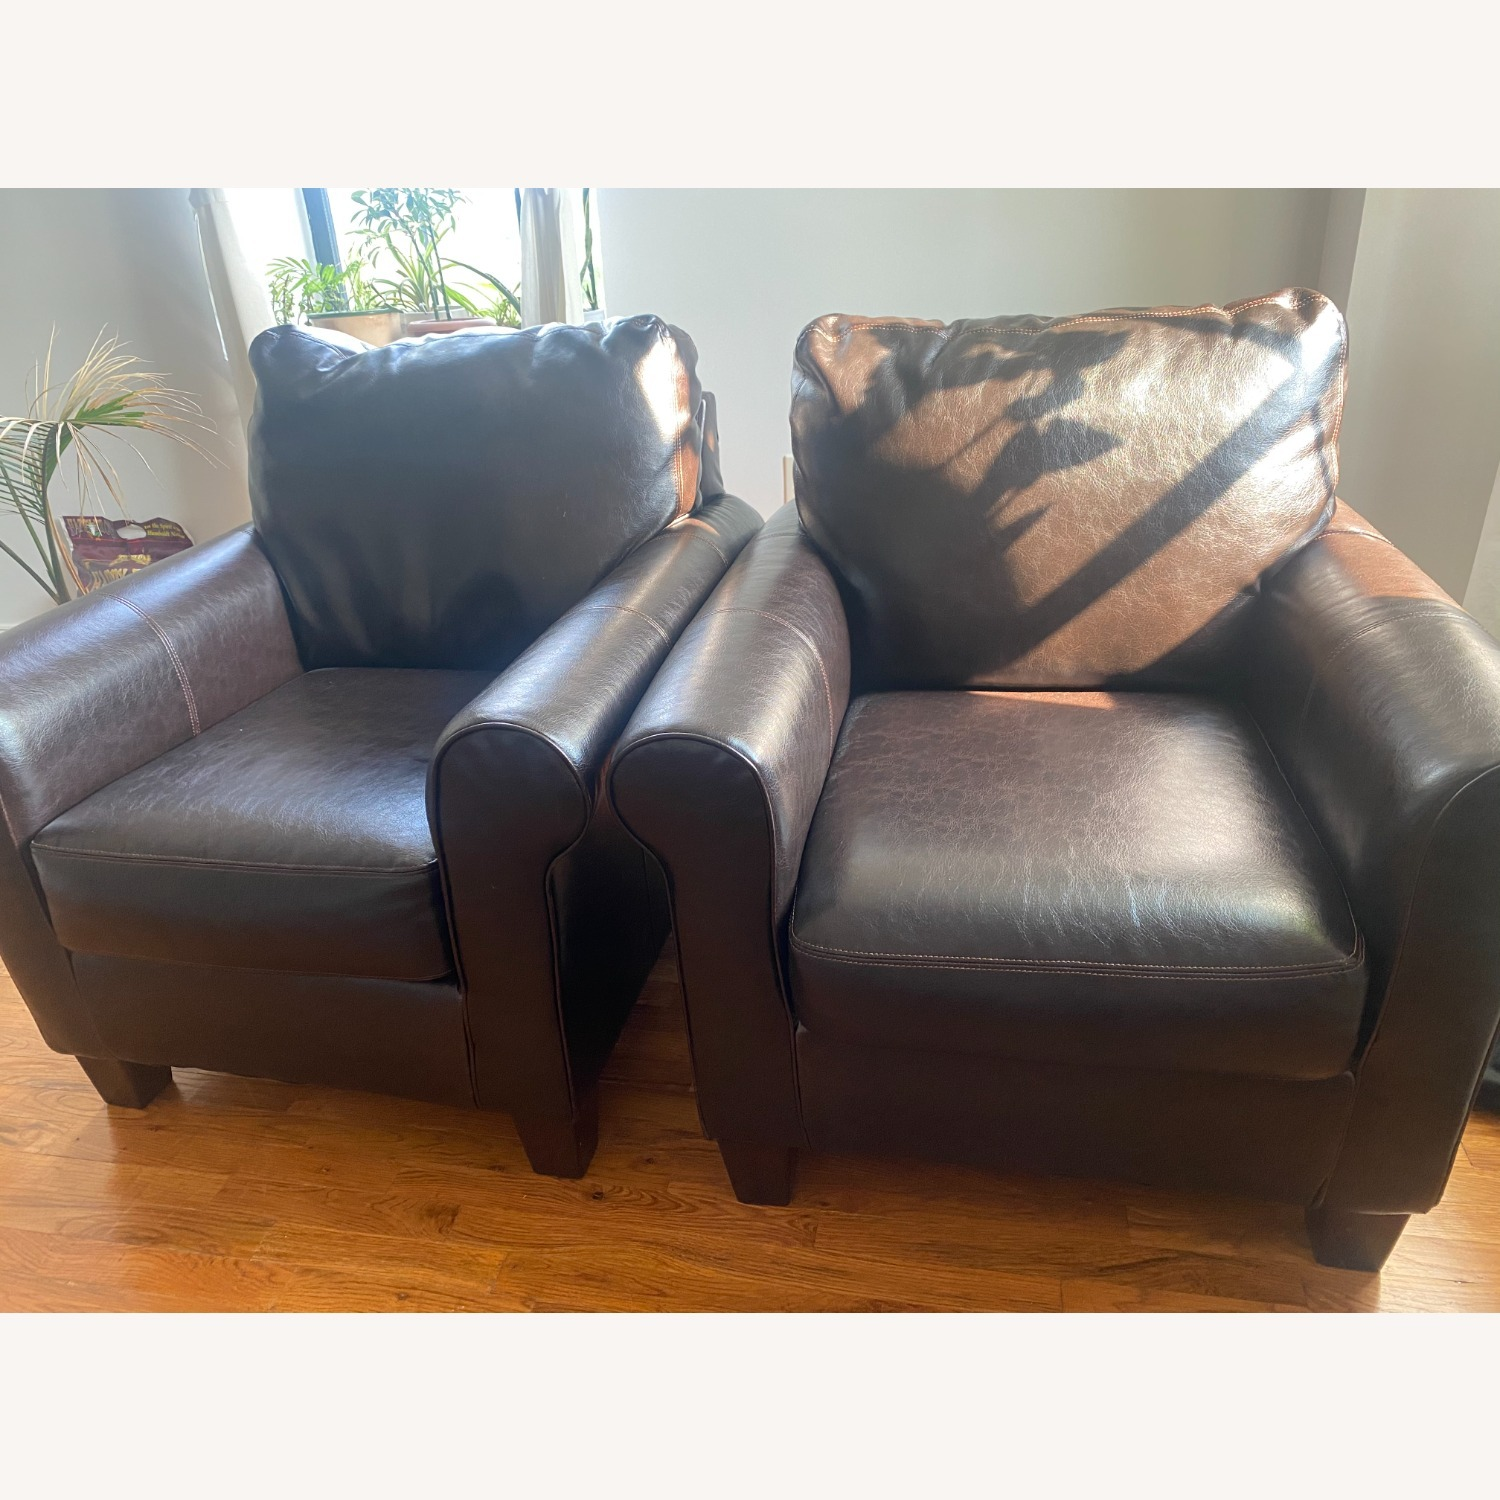 Ashley Furniture 2 Dark Brown Leather Arm Chairs - image-5